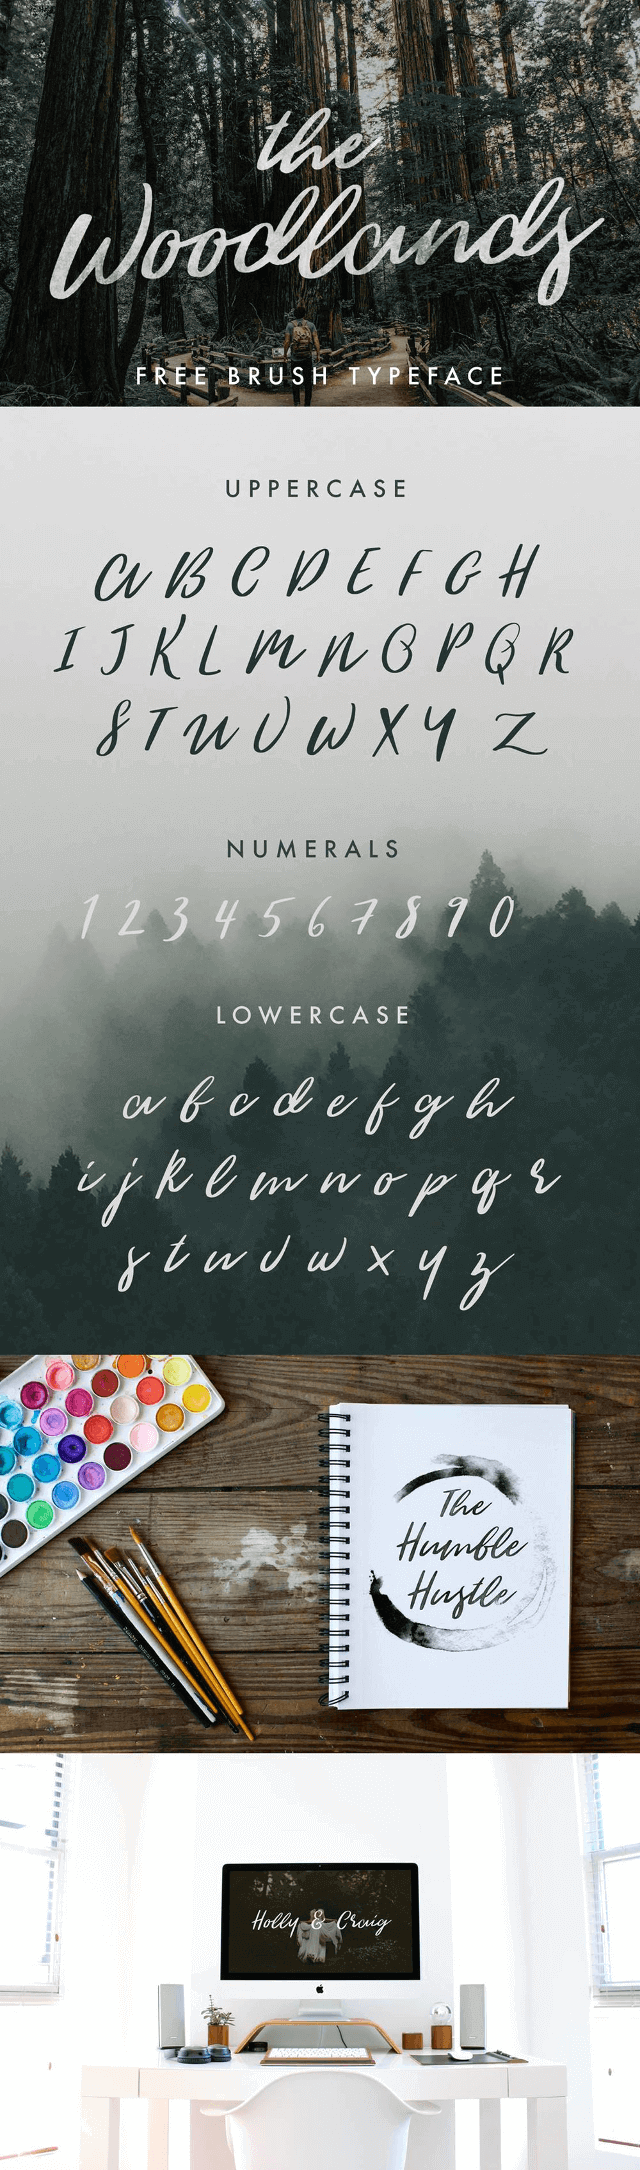 The Woodlands Free Font